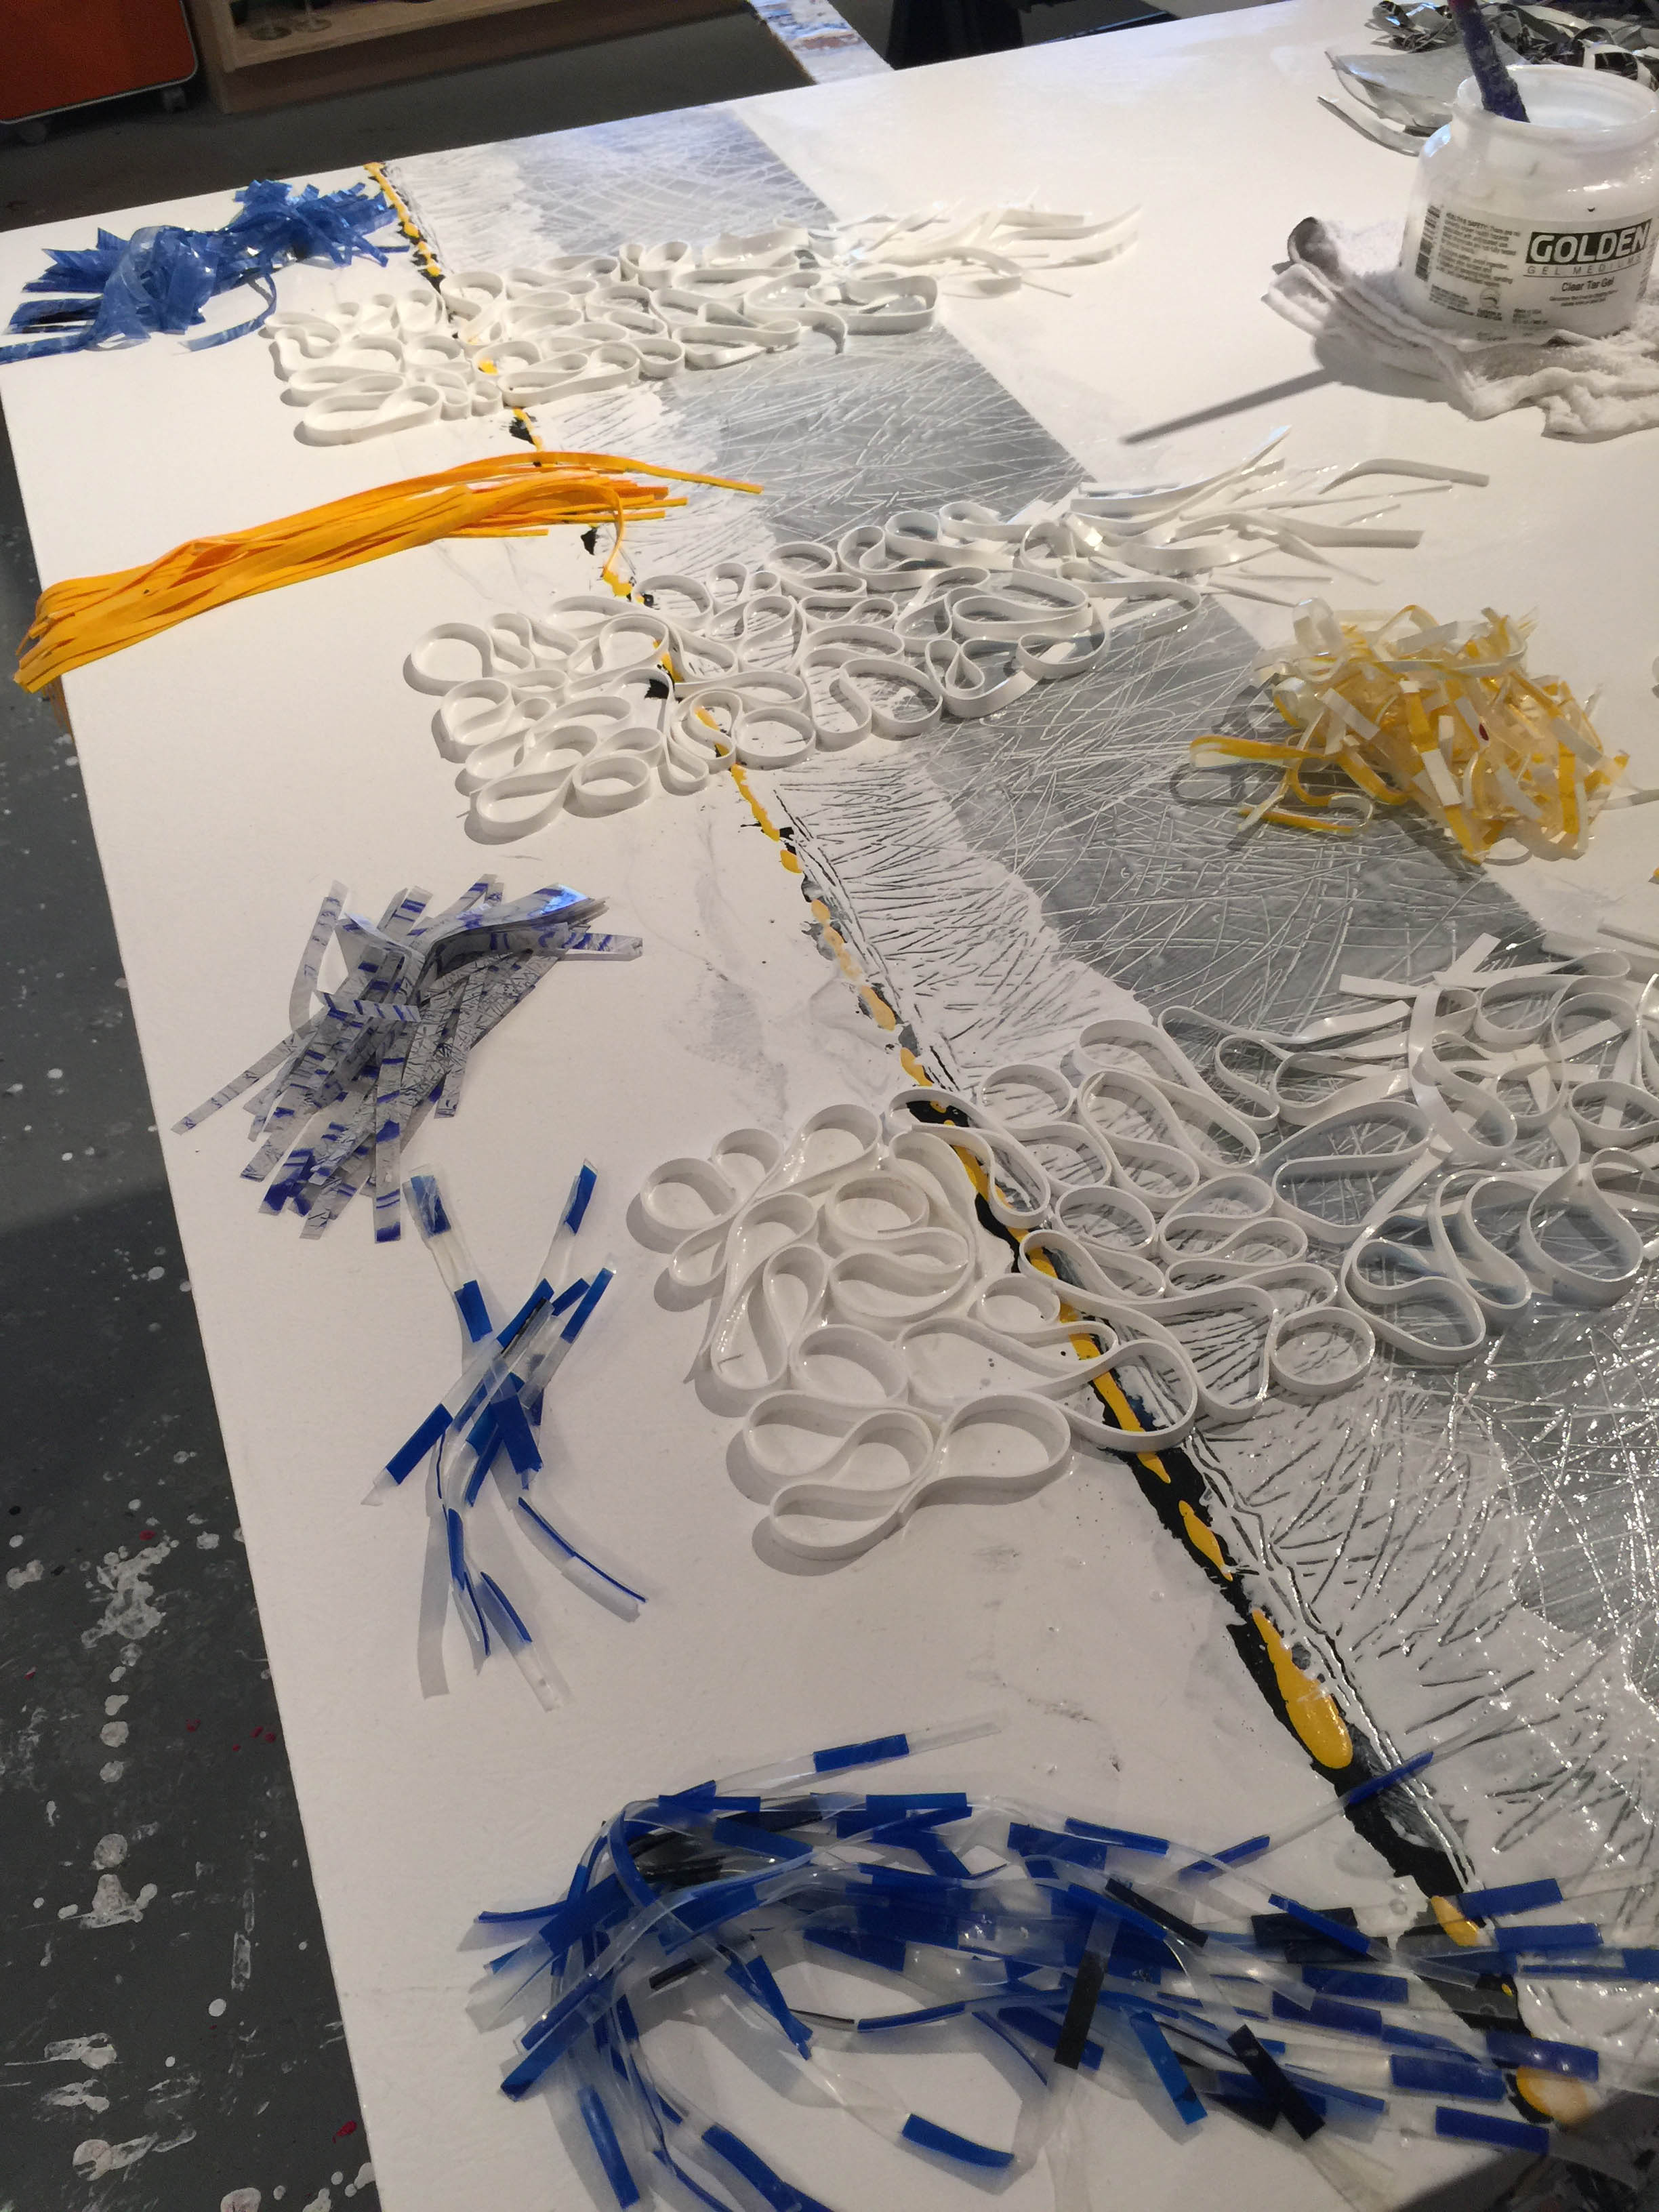 Strips of dried acrylic gel physicalize the braided, organic formations in Brian Huber's work, inspired by natural landscapes such Denali National Park, in Alaska.